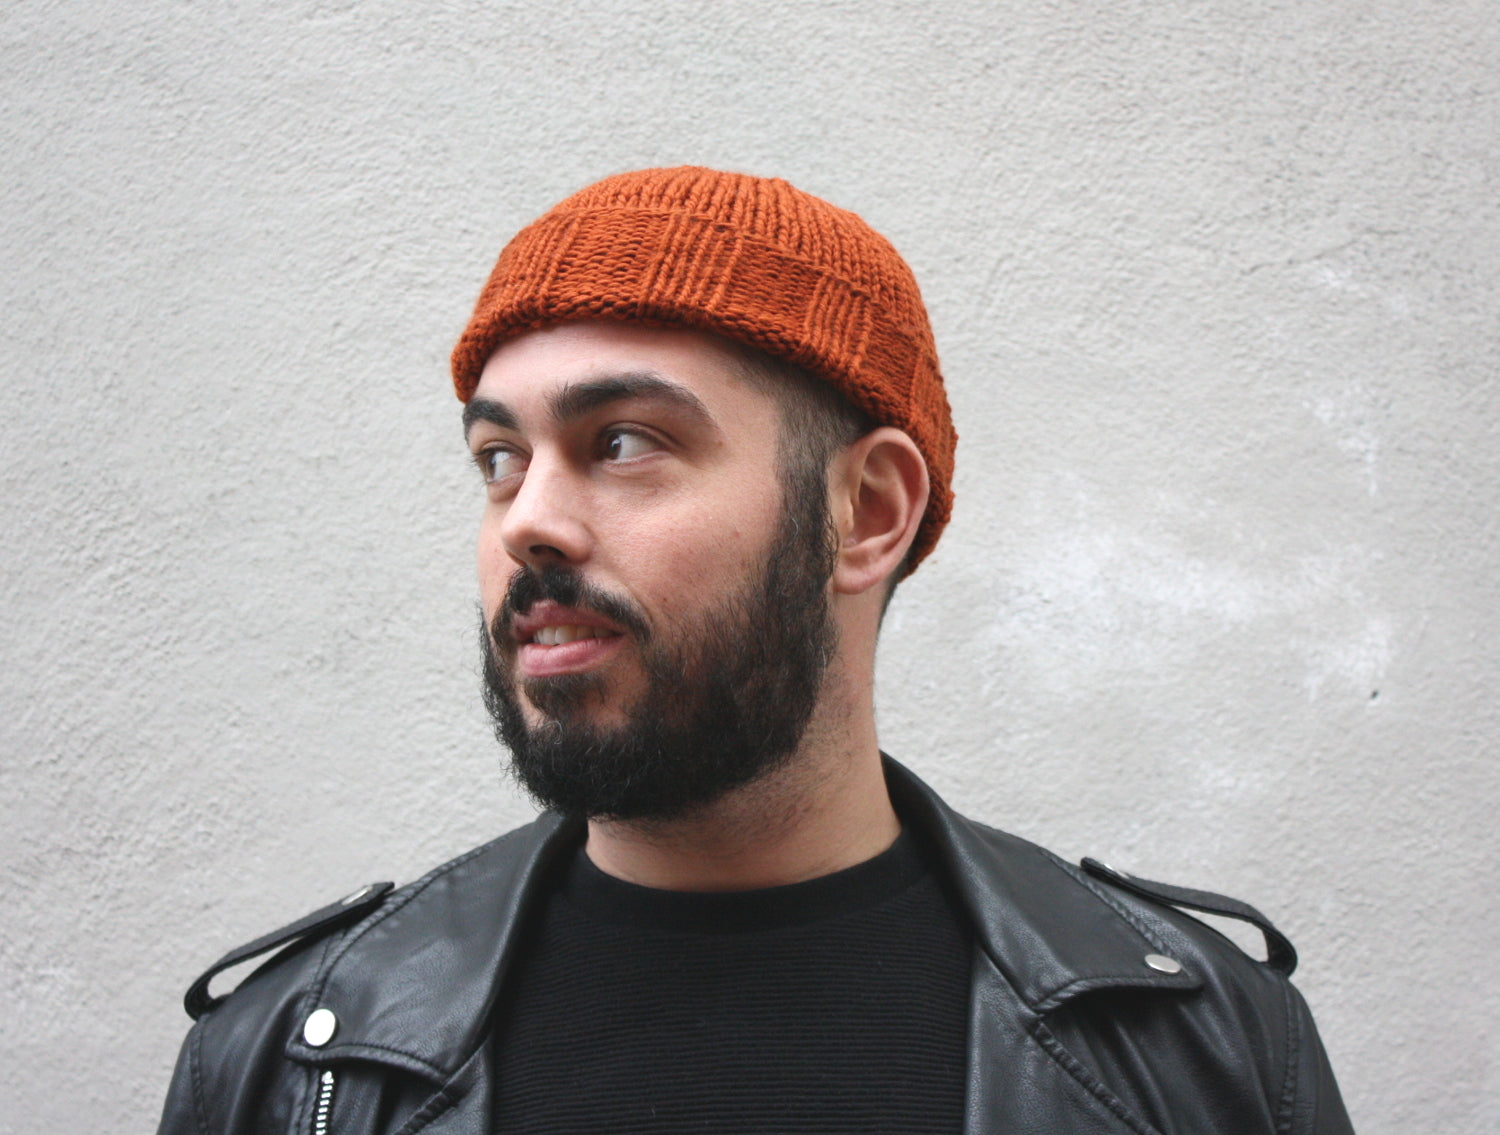 Men's Merino Beanie in Rust, hand knit with Merino wool in Canada